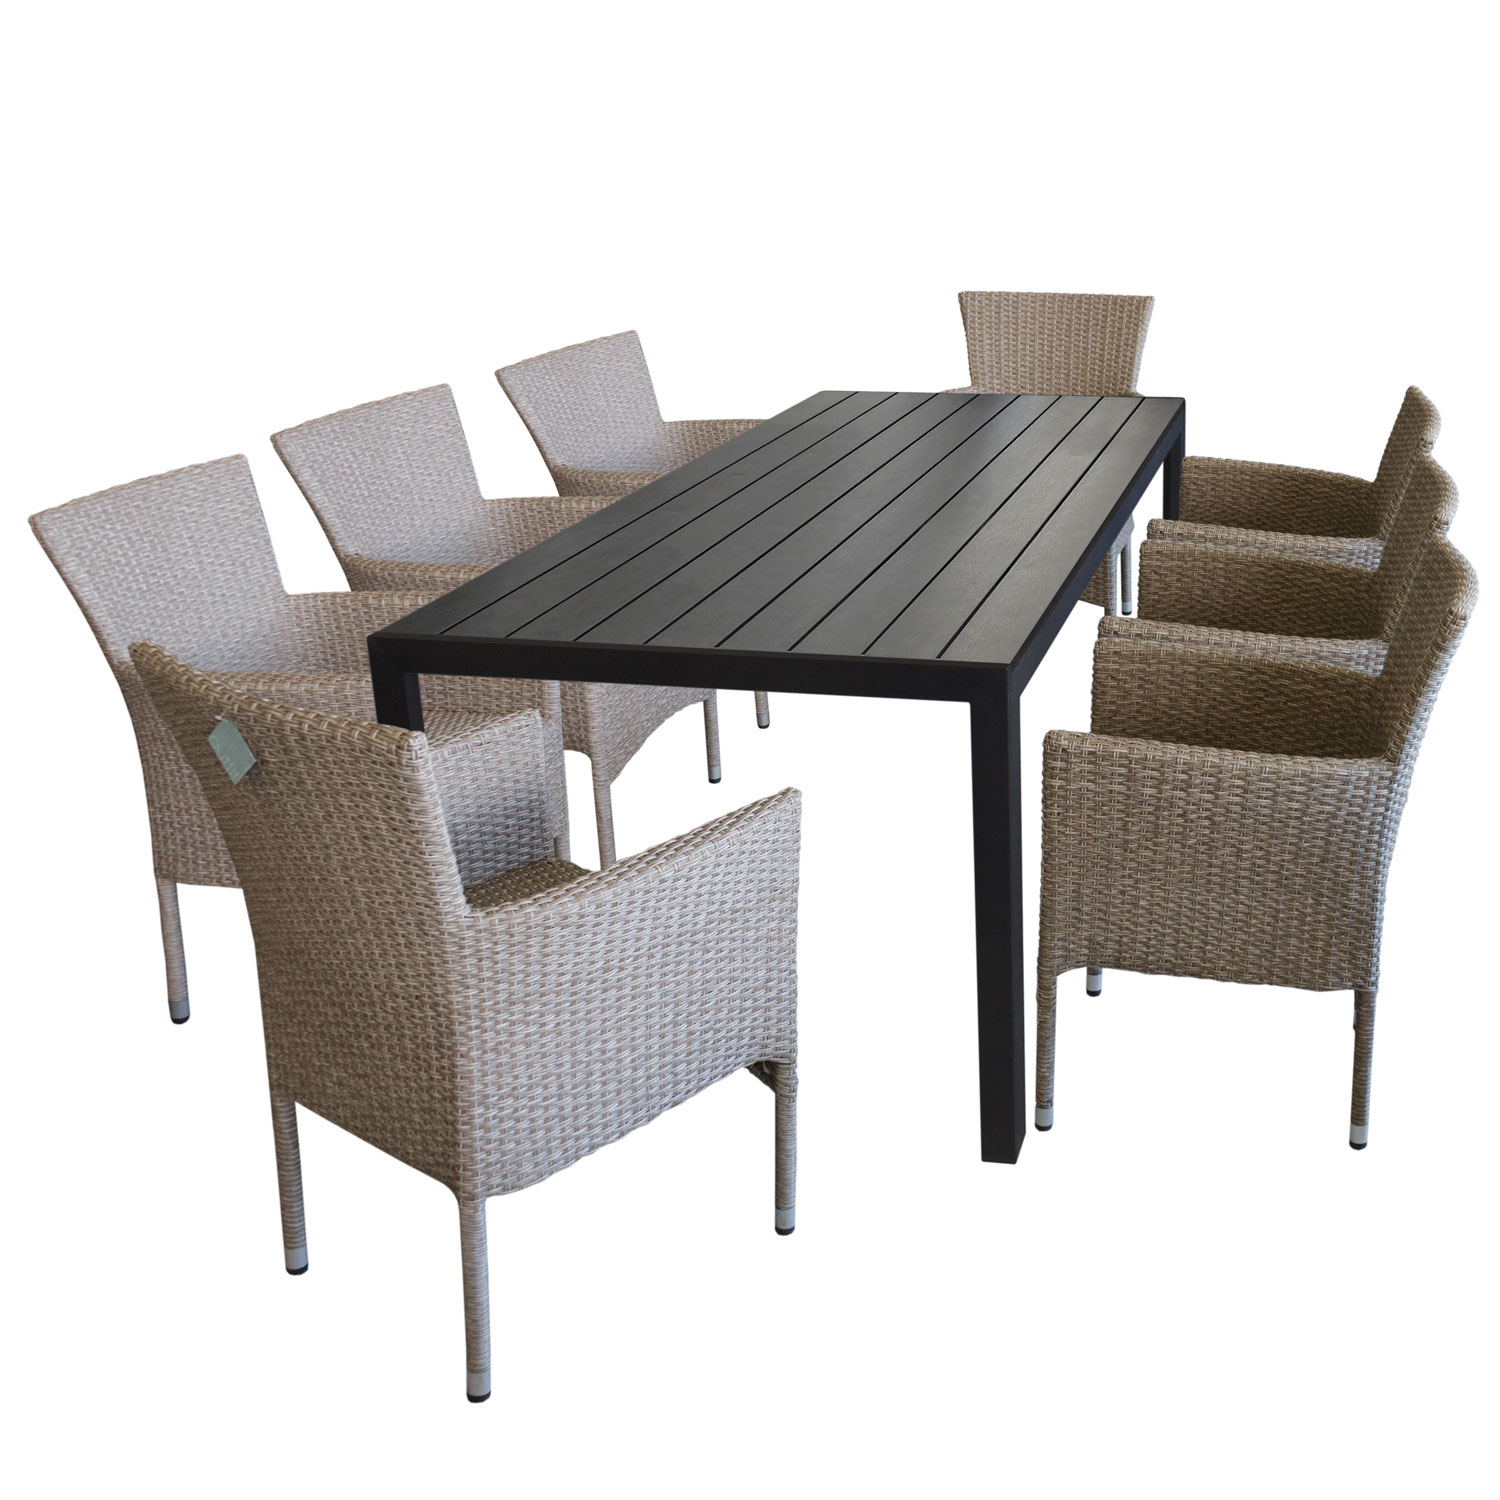 gartentisch sitzgruppe tisch alu polywood 205x90cm 8x rattansessel stapelbar ebay. Black Bedroom Furniture Sets. Home Design Ideas